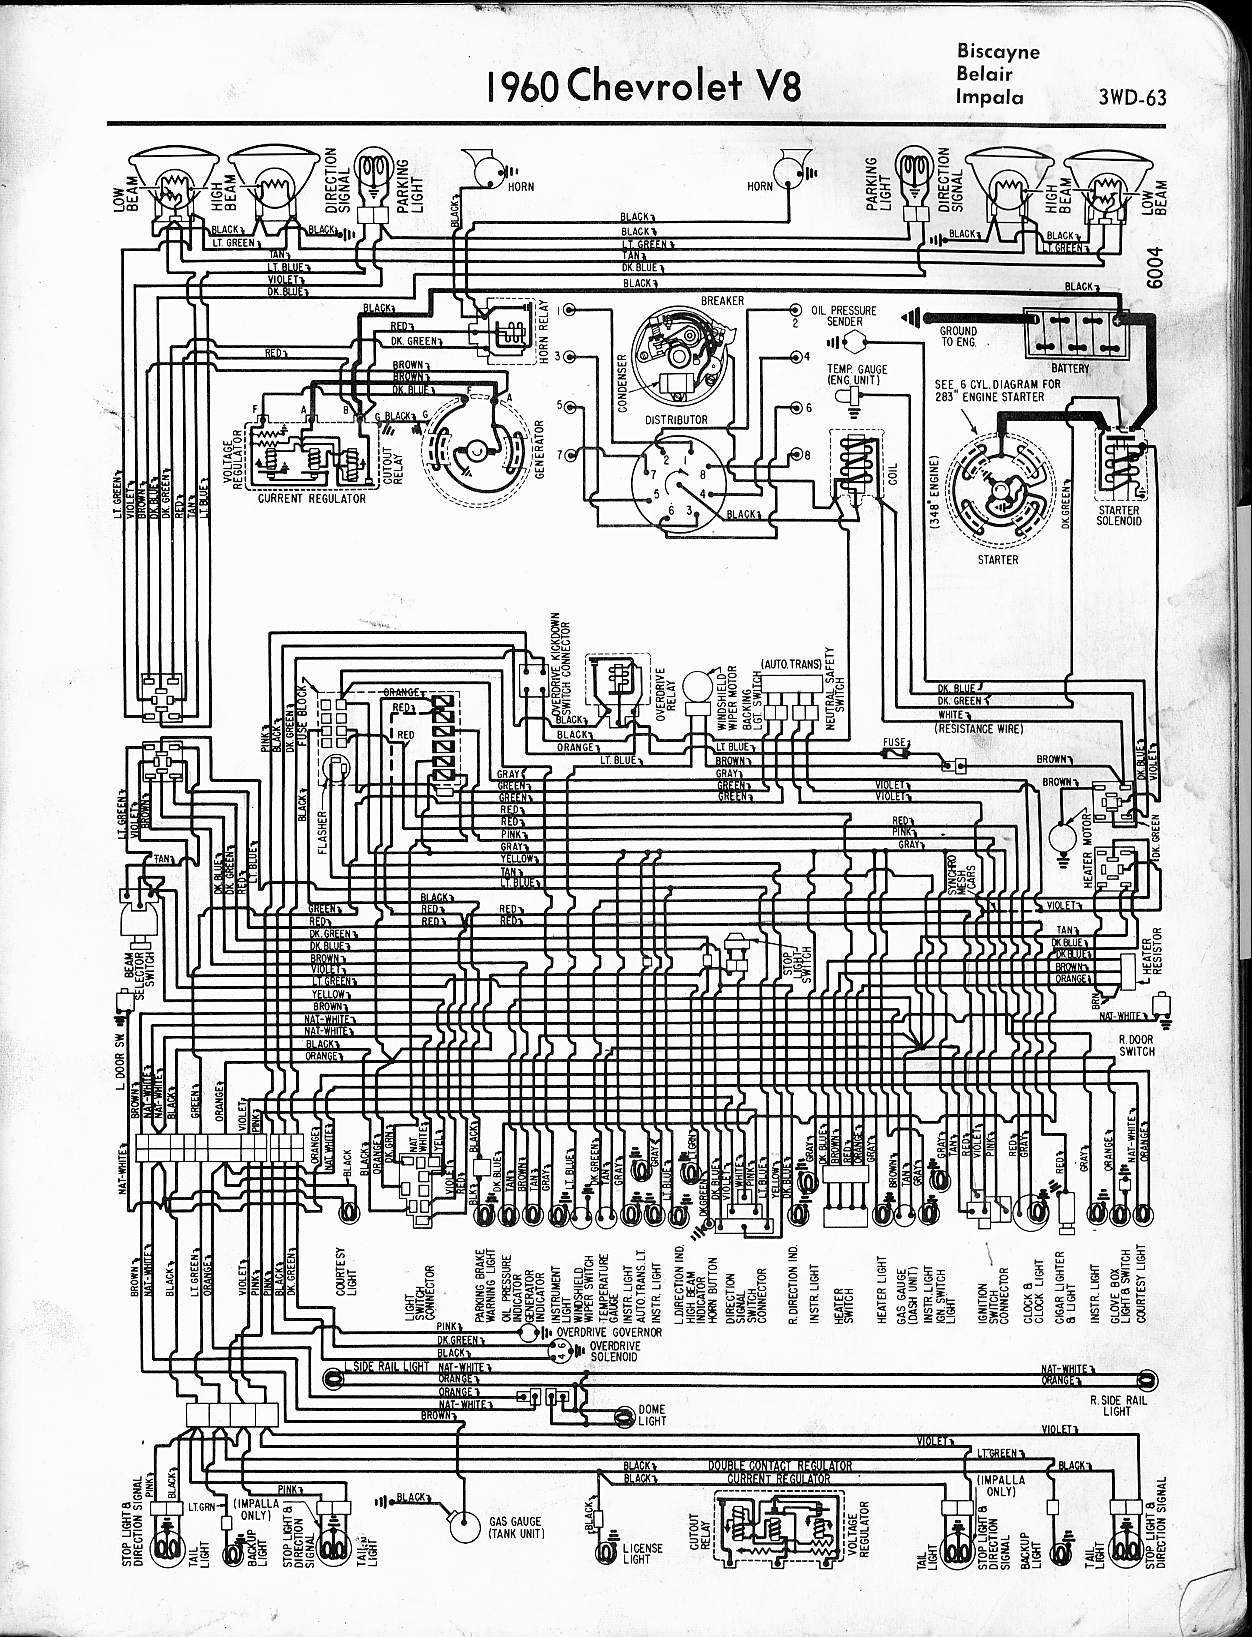 1979 Chevy Truck Wiring Diagram | Free Wiring Diagram